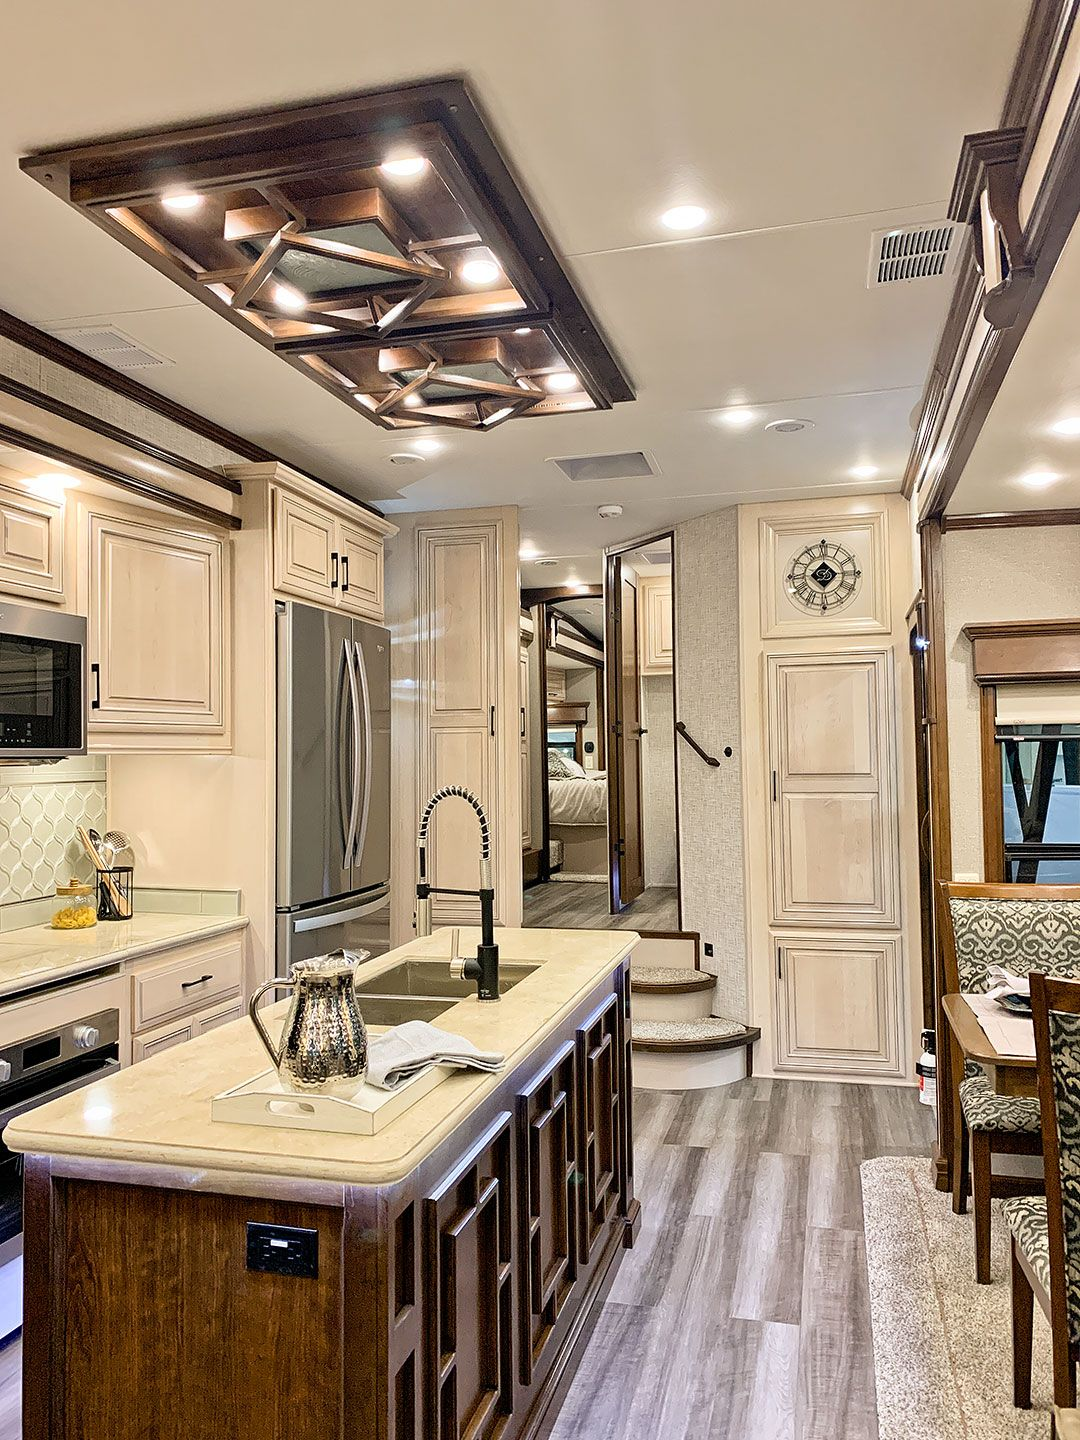 The Best Rvs Of 2019 Revealed At Rvx Luxury Rv Living Luxury Rv